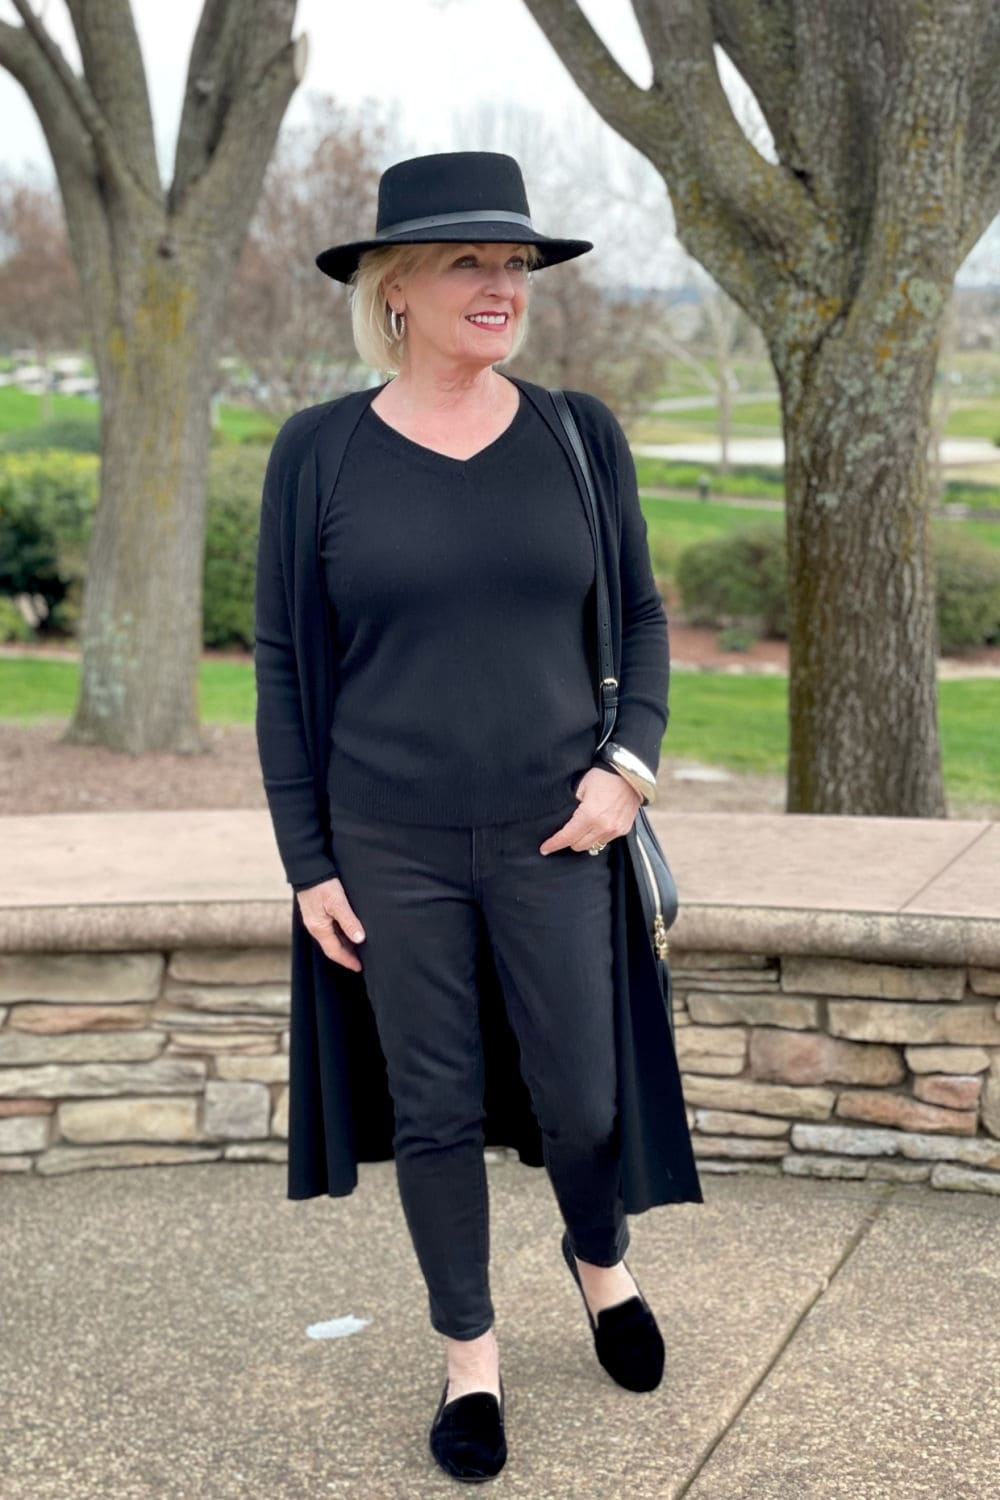 over 50 woman wearing black hat, black sweater and jeans